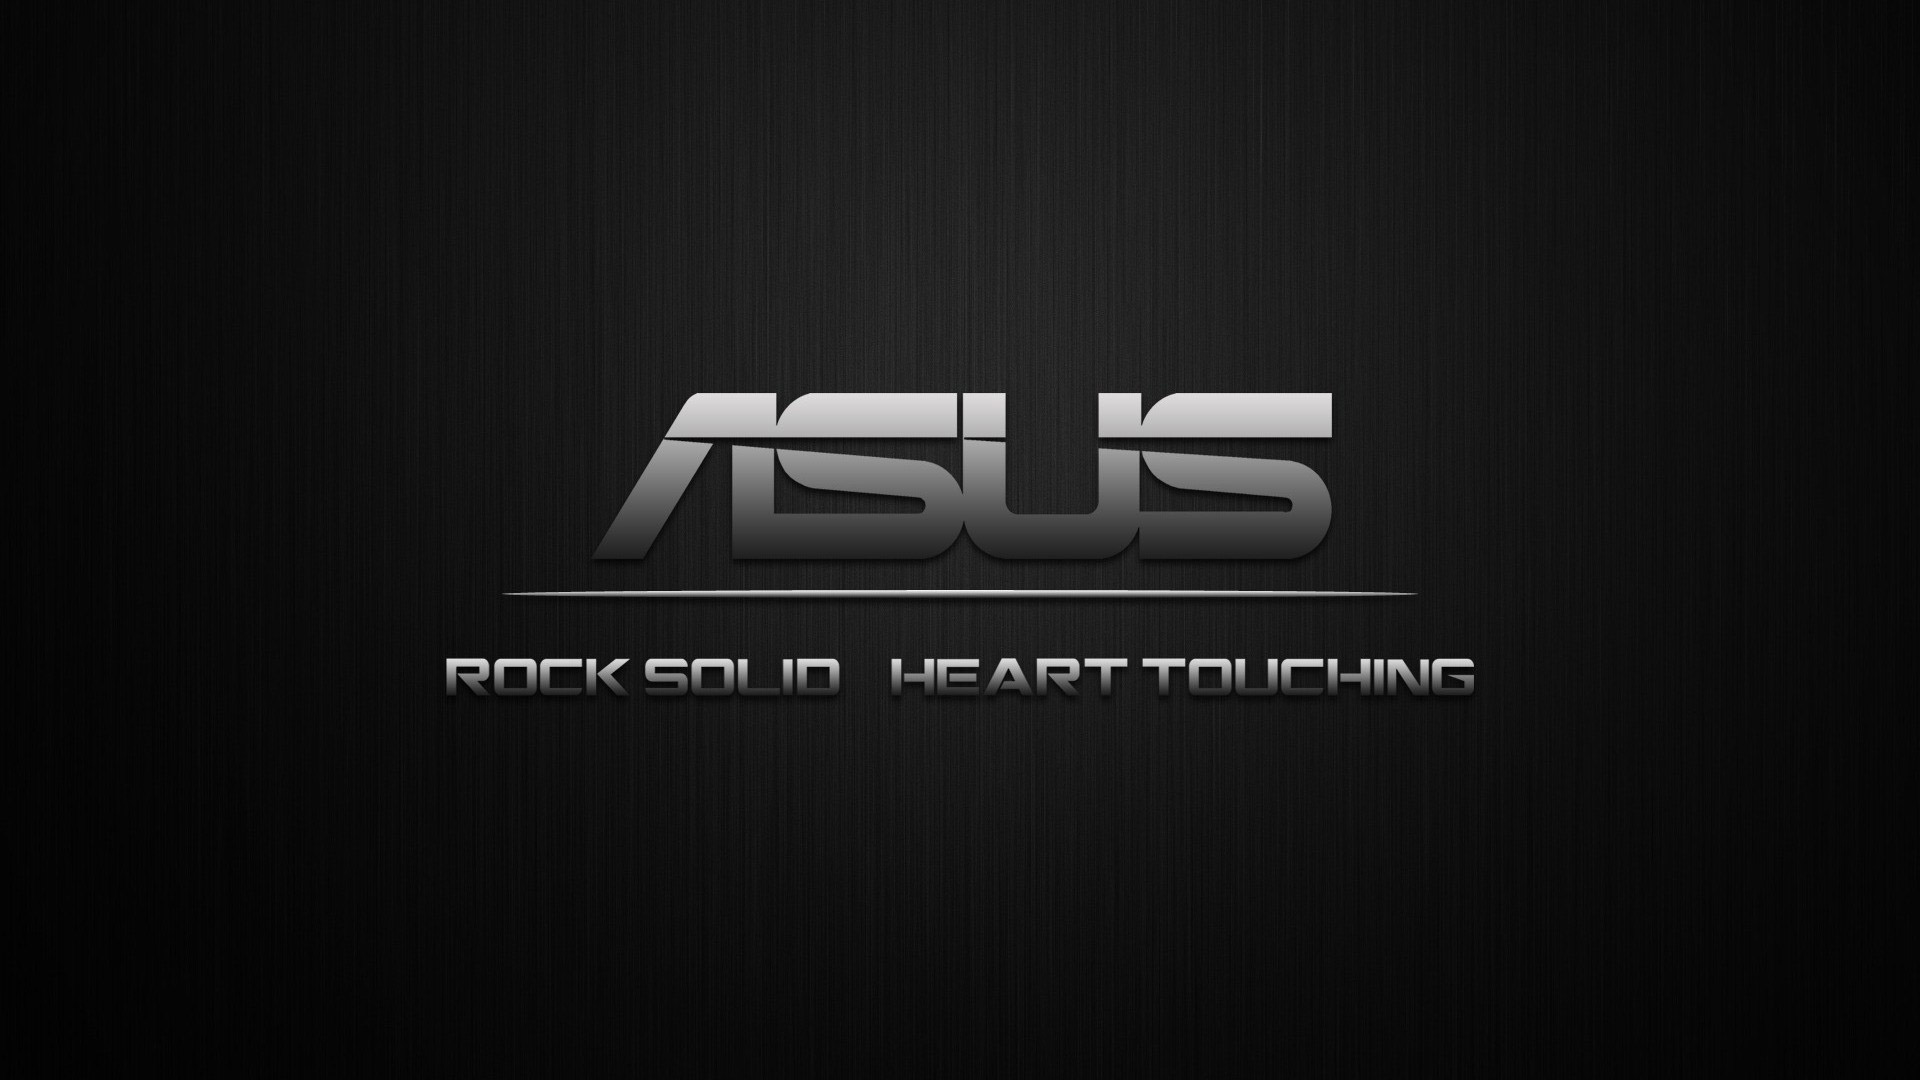 Asus HD Wallpaper FullHDWpp   Full HD Wallpapers 1920x1080 1920x1080